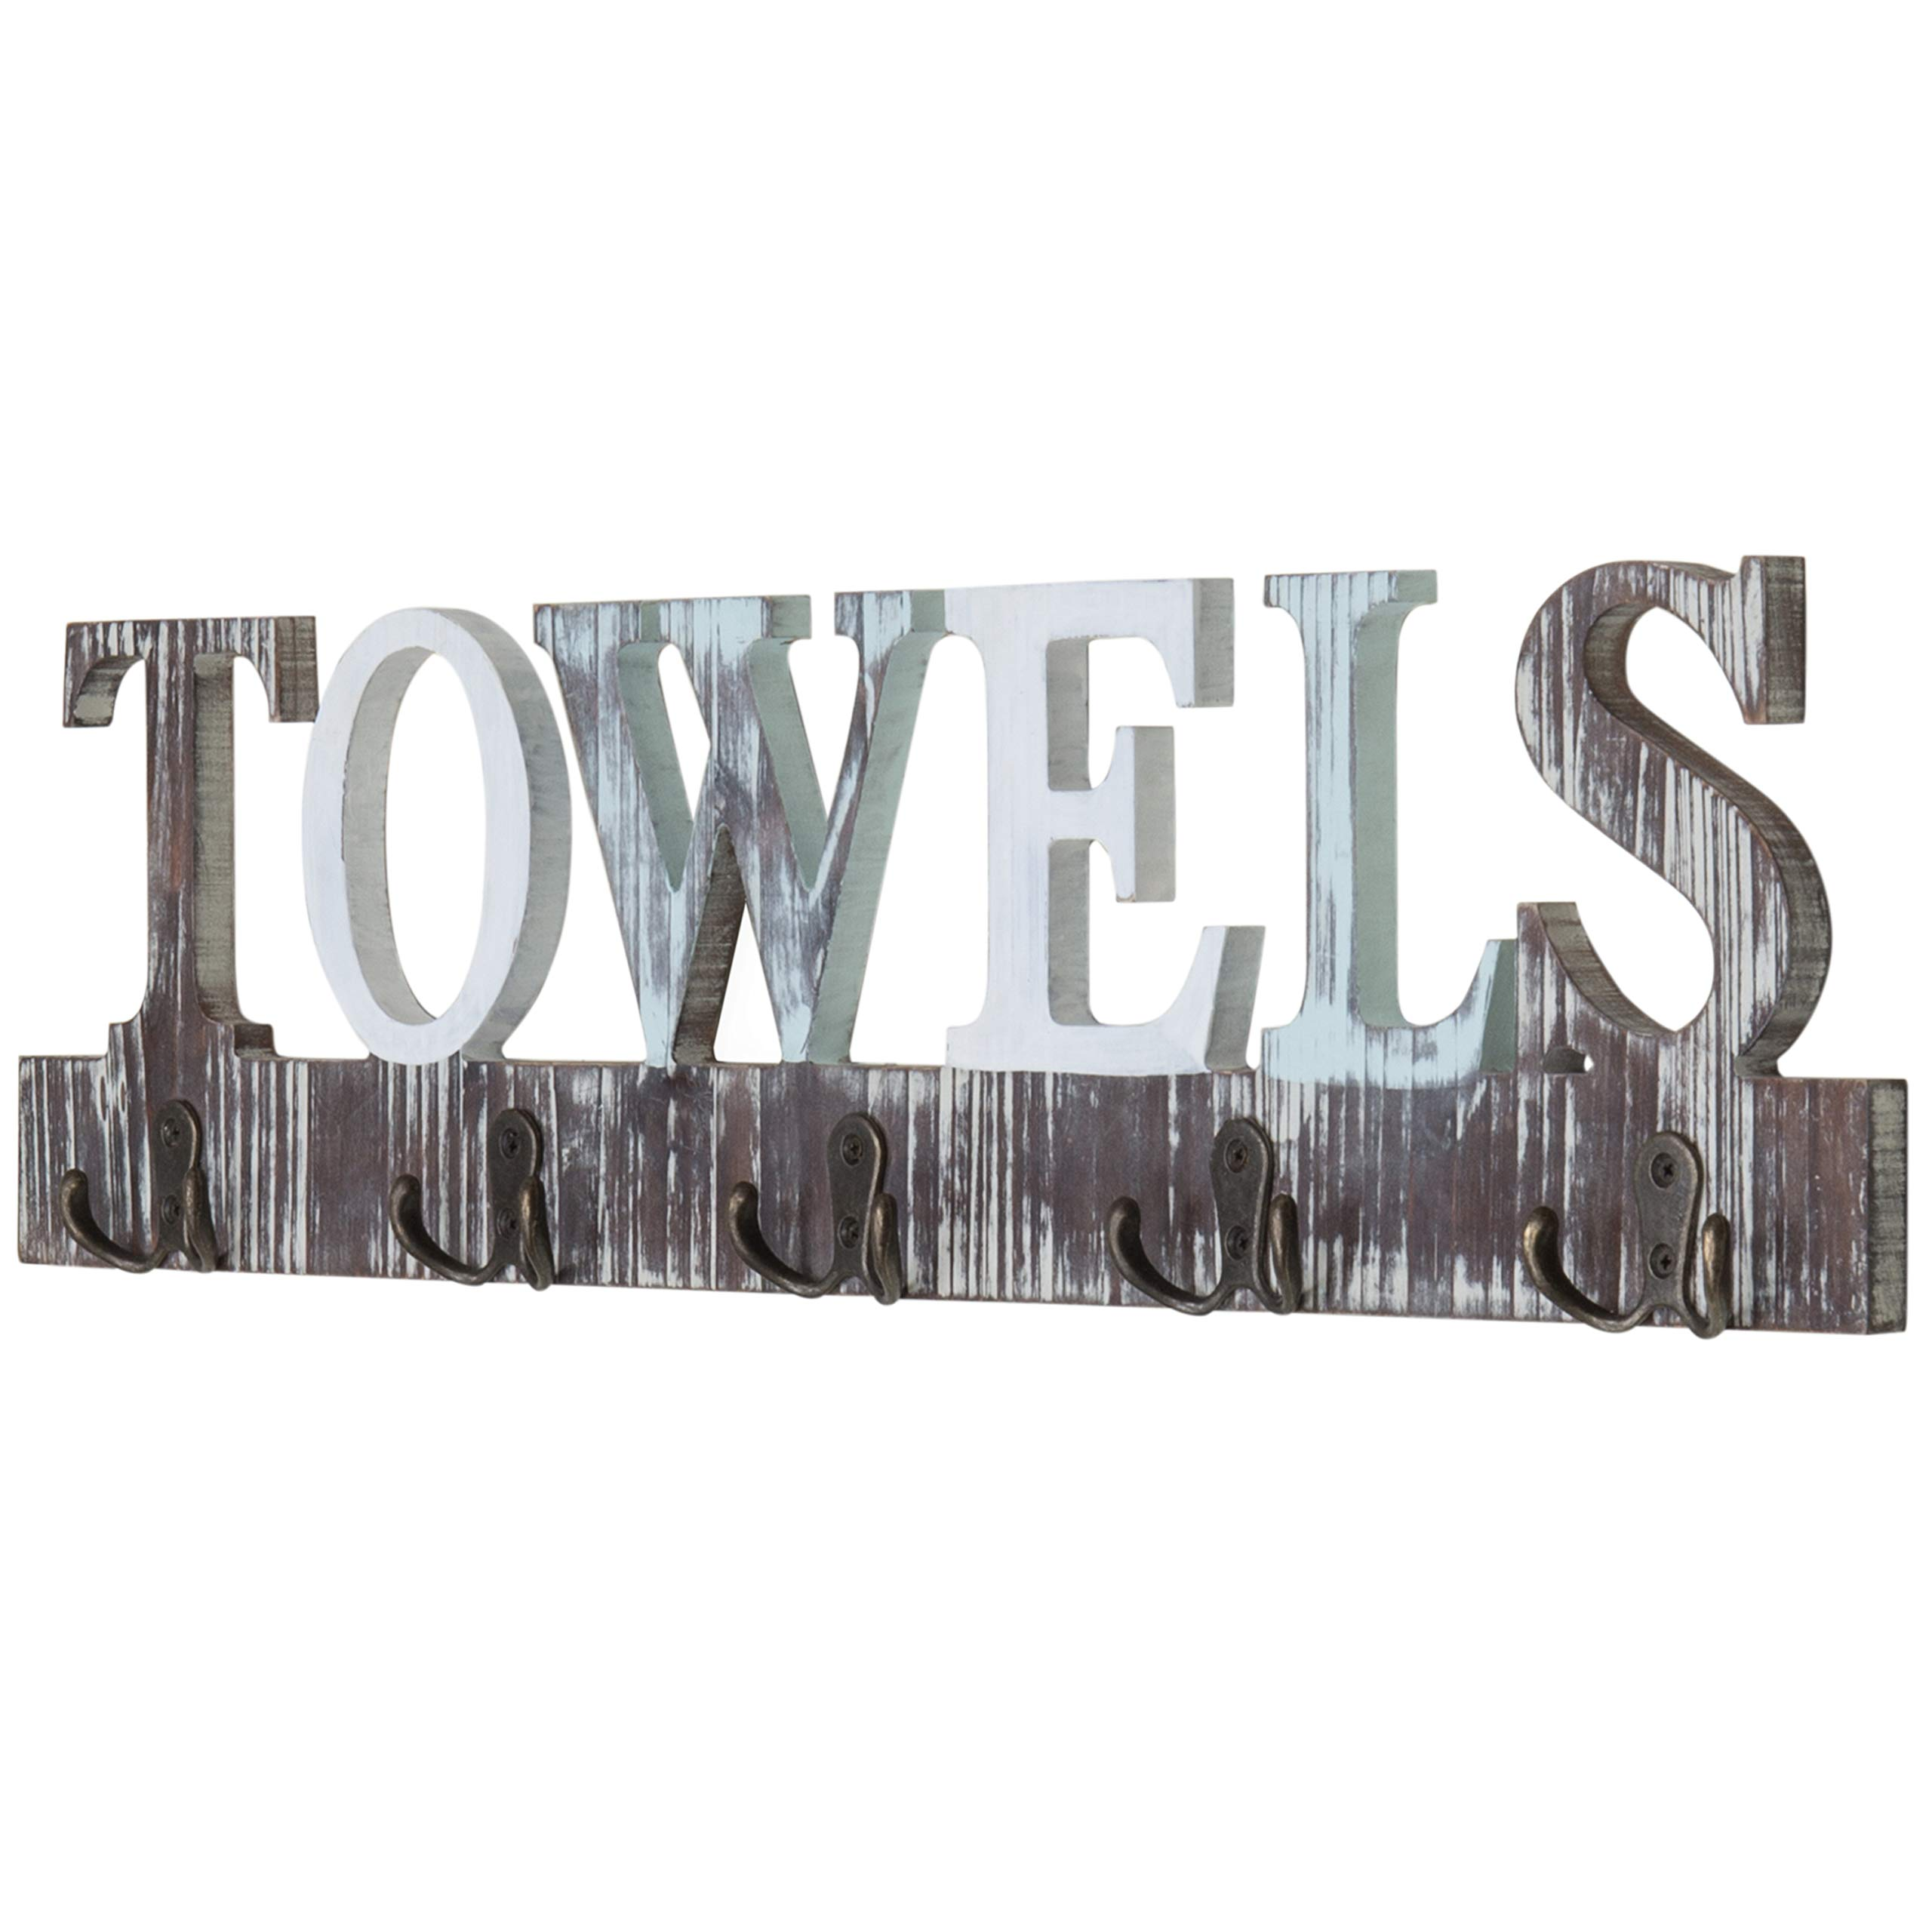 MyGift Rustic Wood 5 Dual-Hook Towel Hanging Rack with Cutout Letters by MyGift